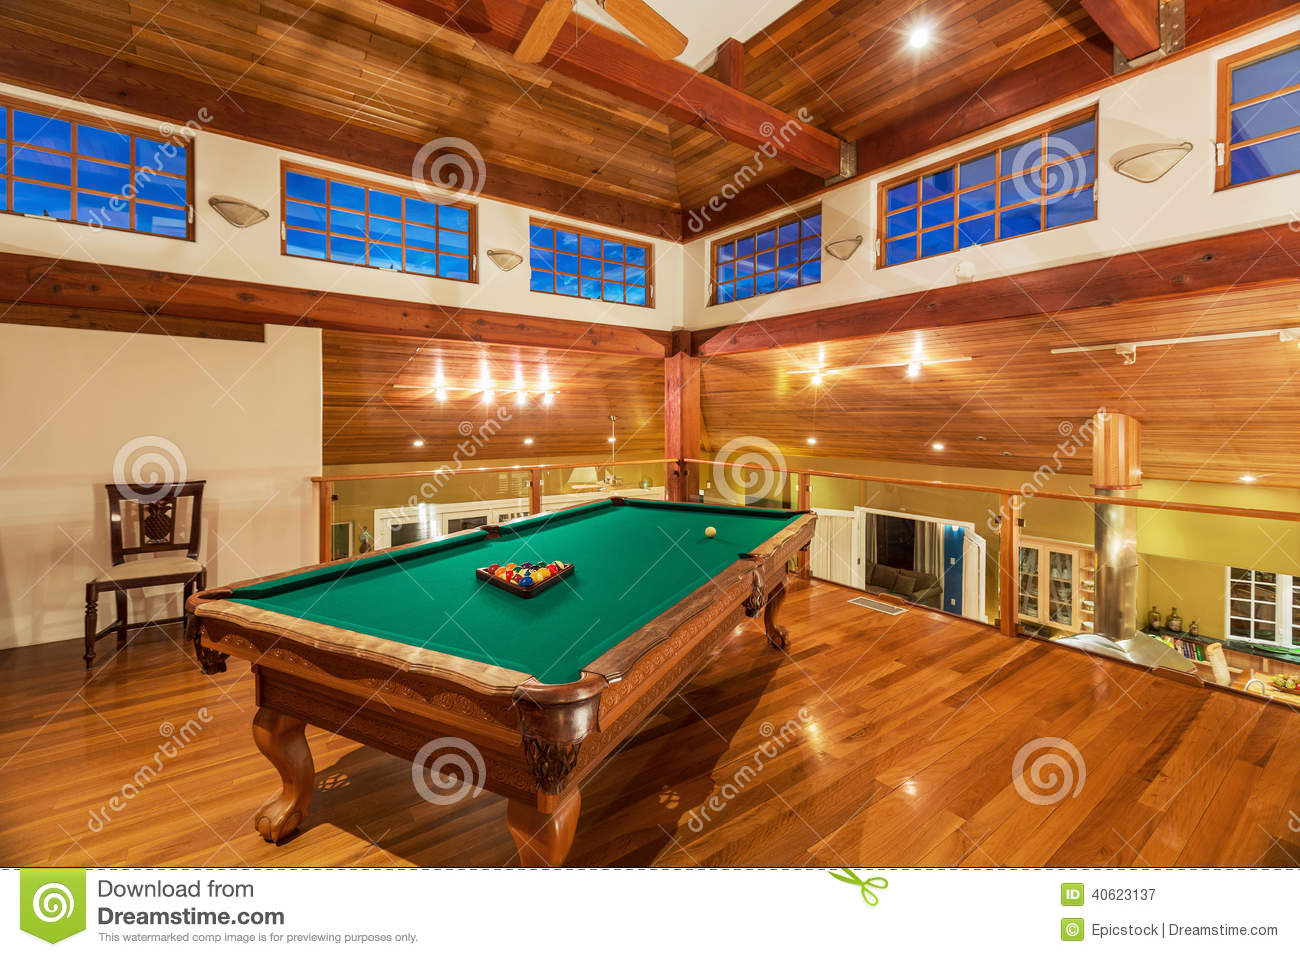 Pool Table In Luxury Home Stock Photo Image 40623137